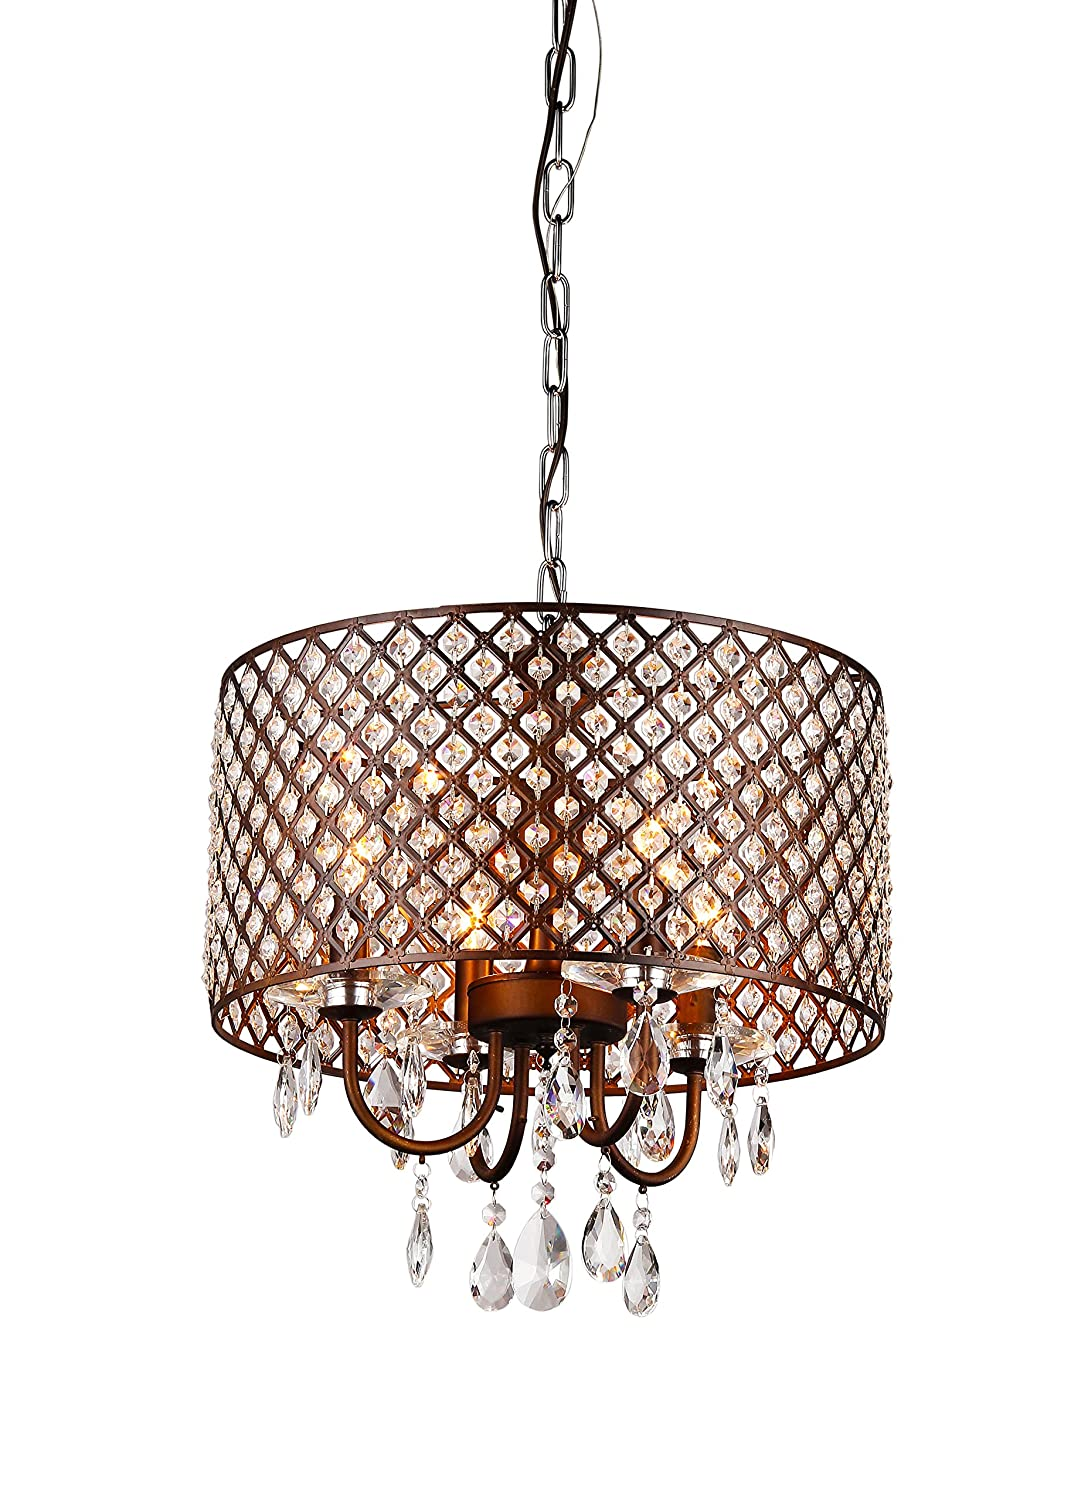 Whse of tiffany rl8064 alexia antique bronze chandelier amazon arubaitofo Images